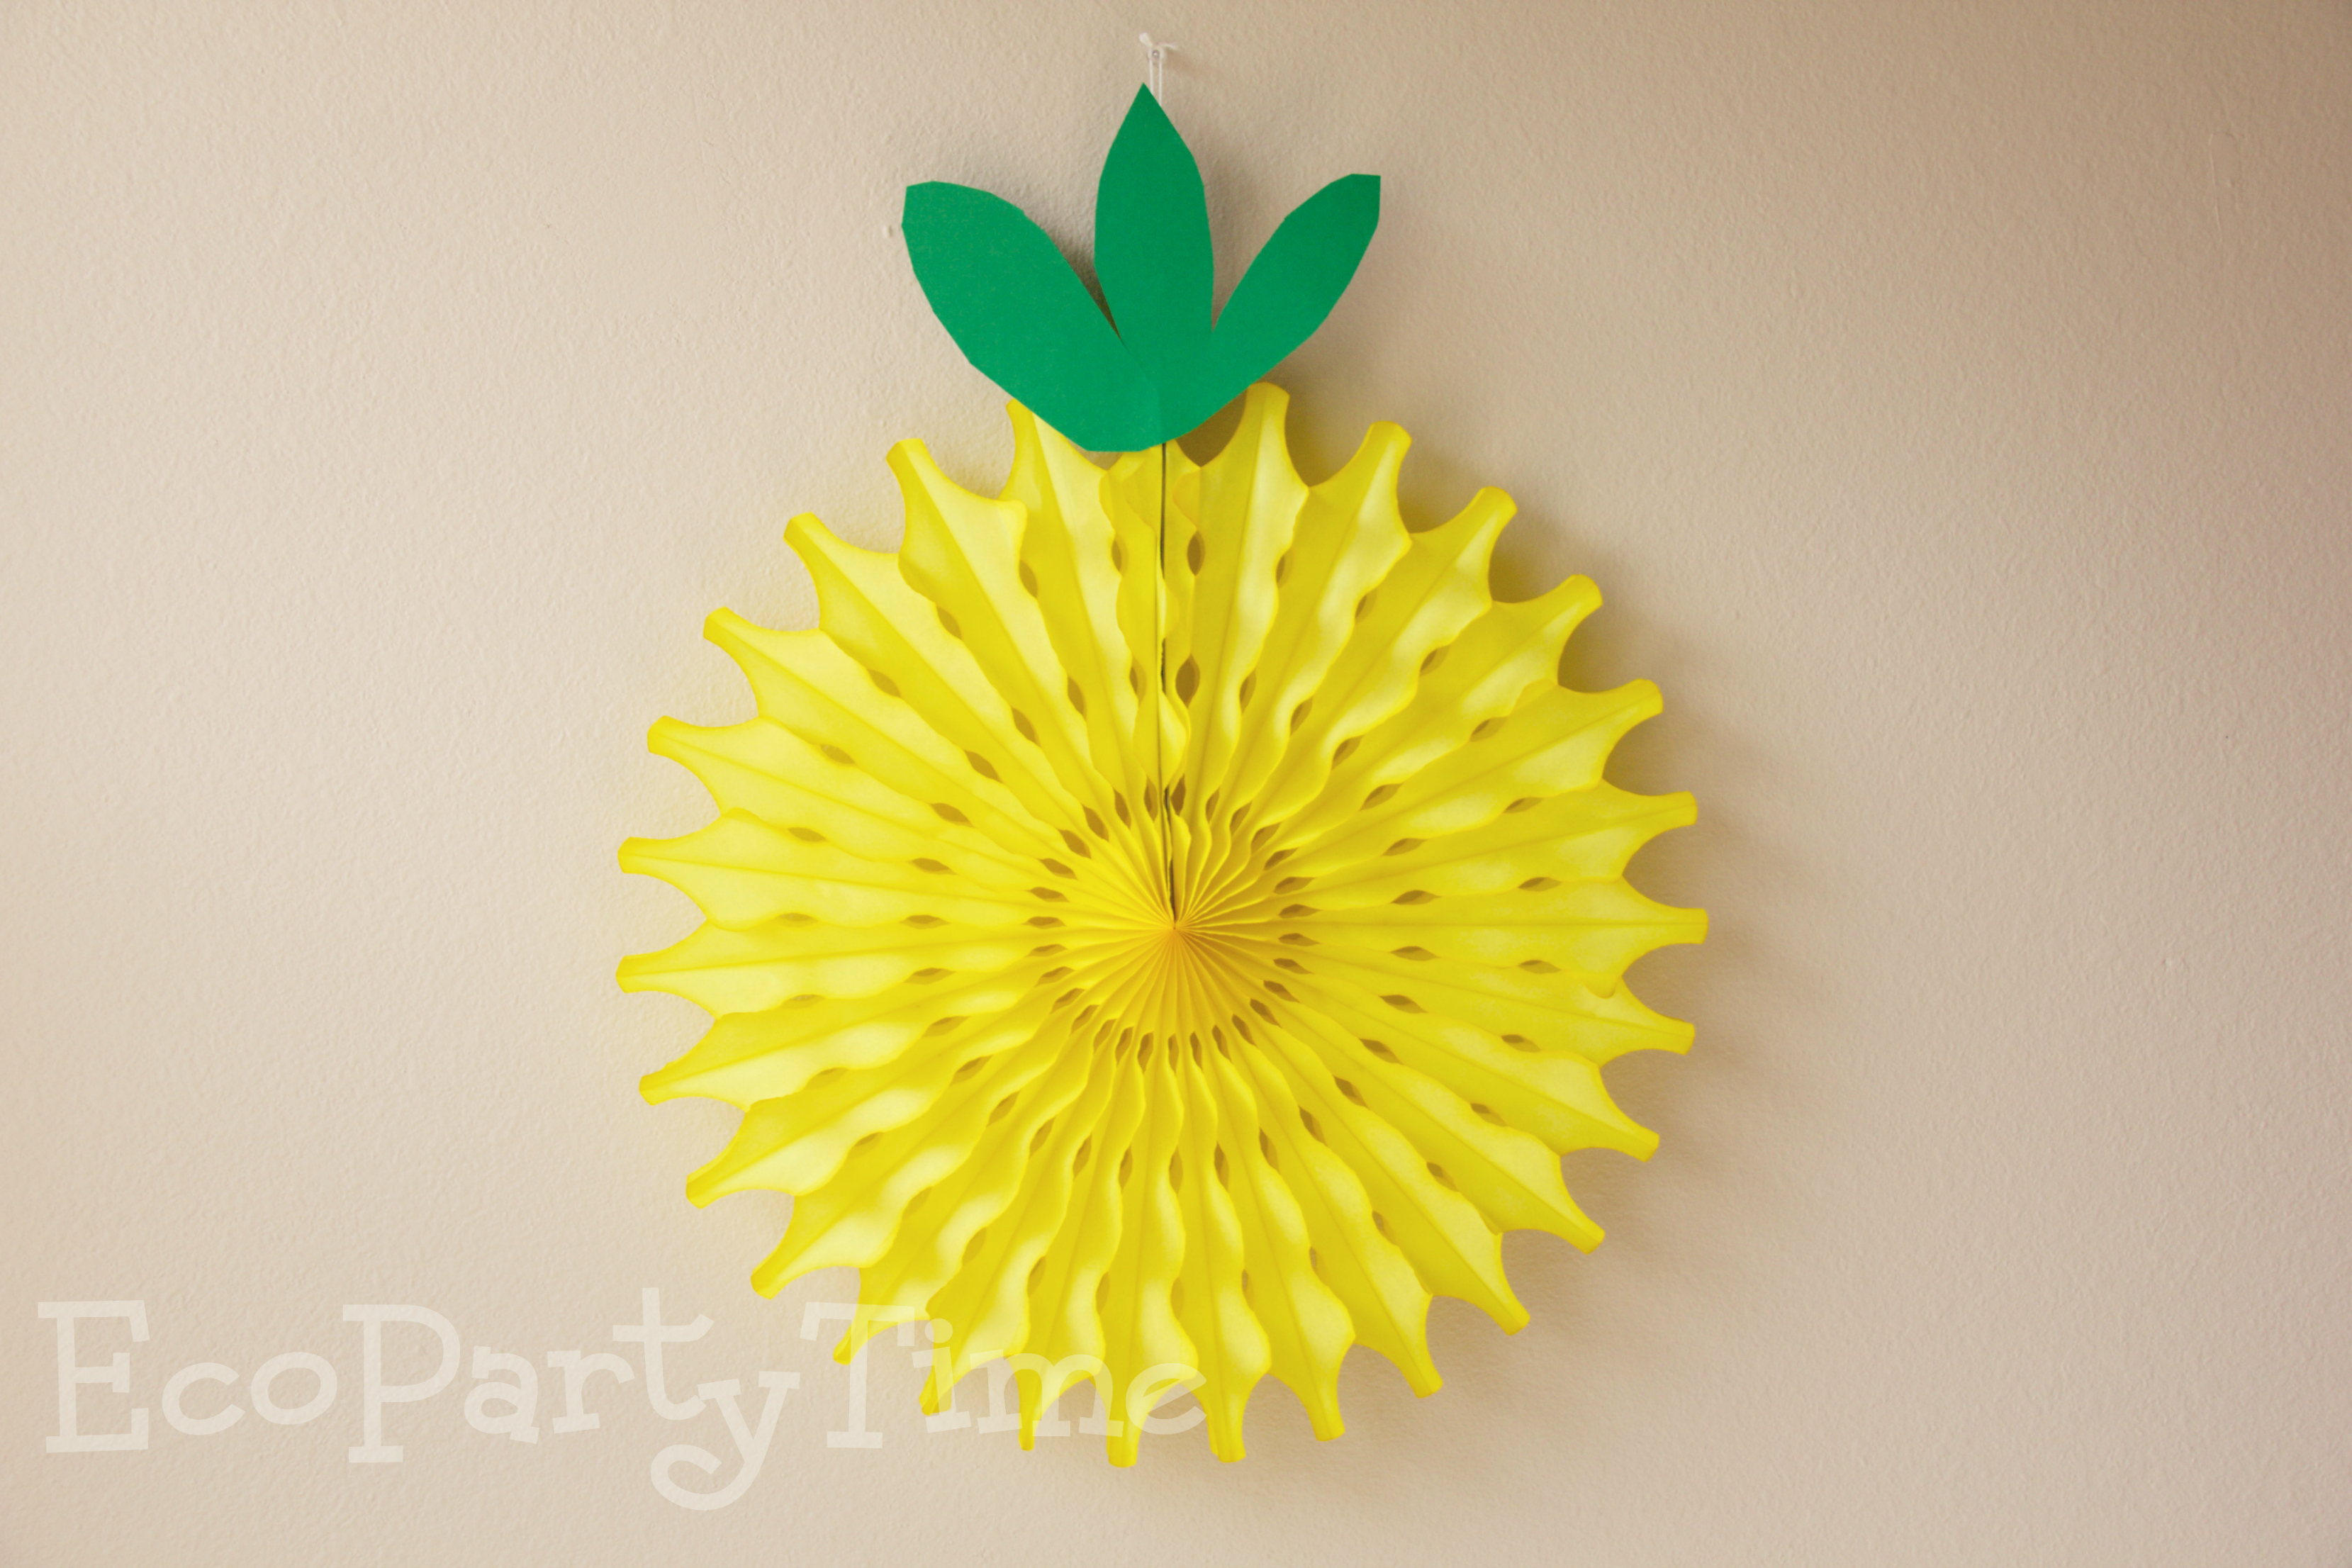 Ecopartytime: Fun Uses for Tissue Fans and Tissue Balls